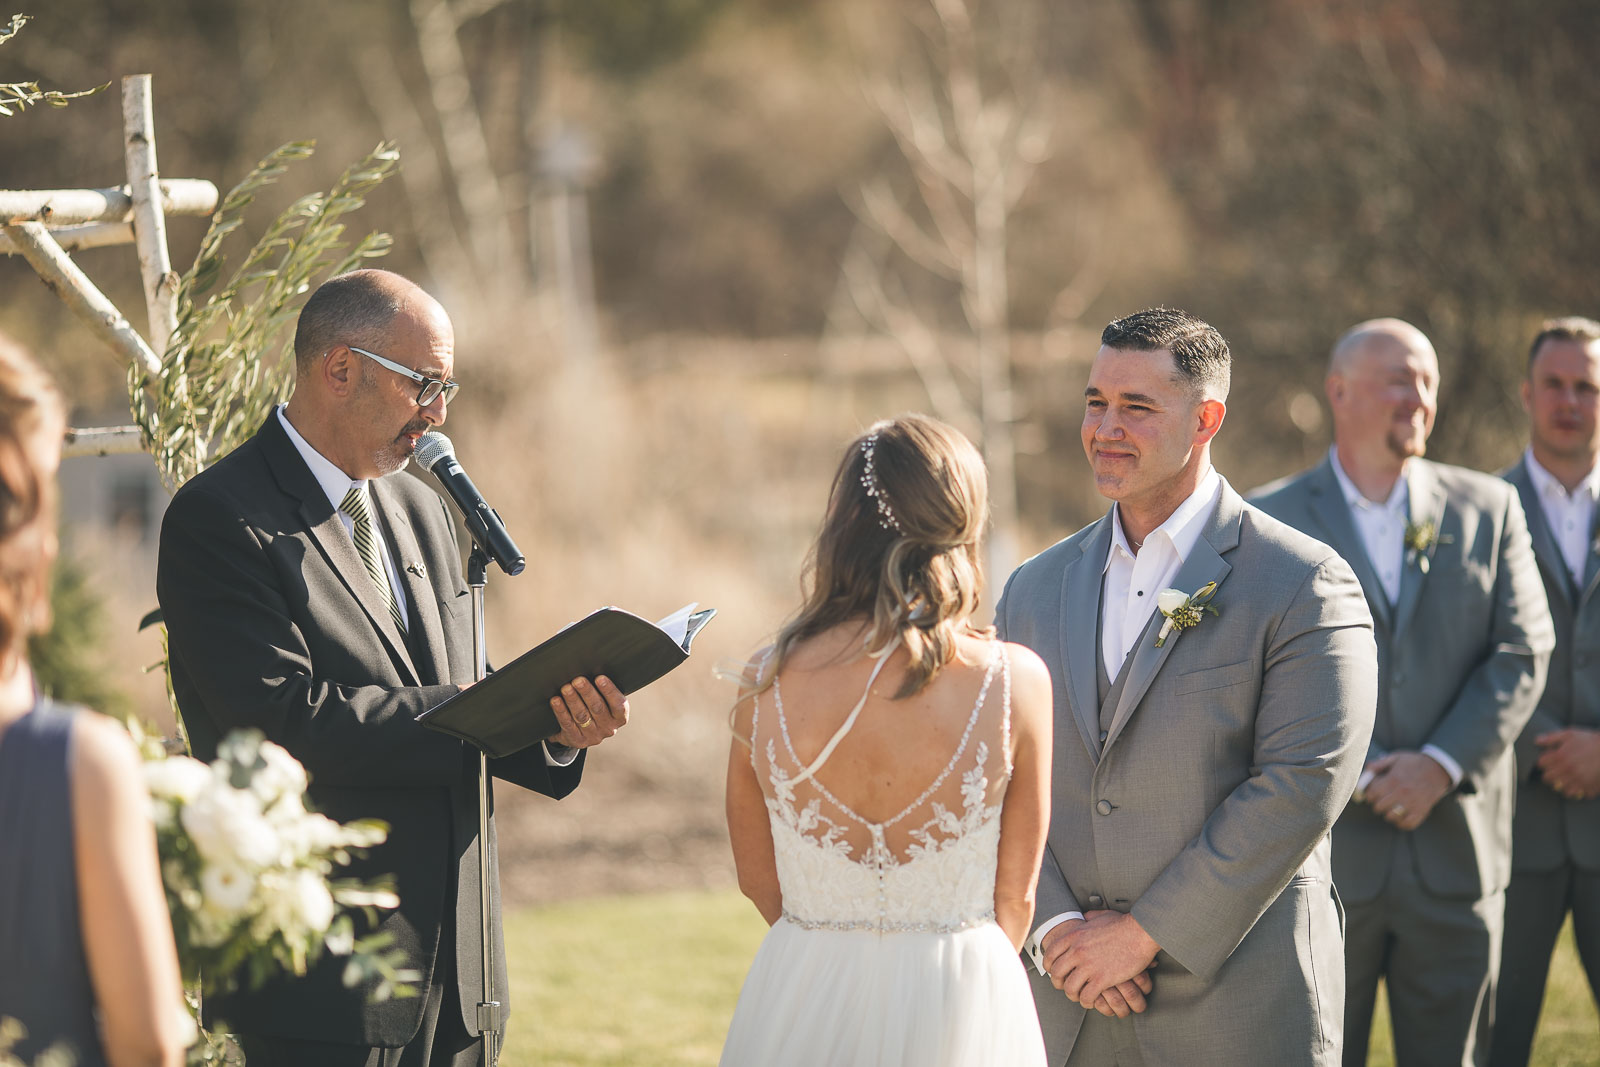 Groom Smiles During Ceremony